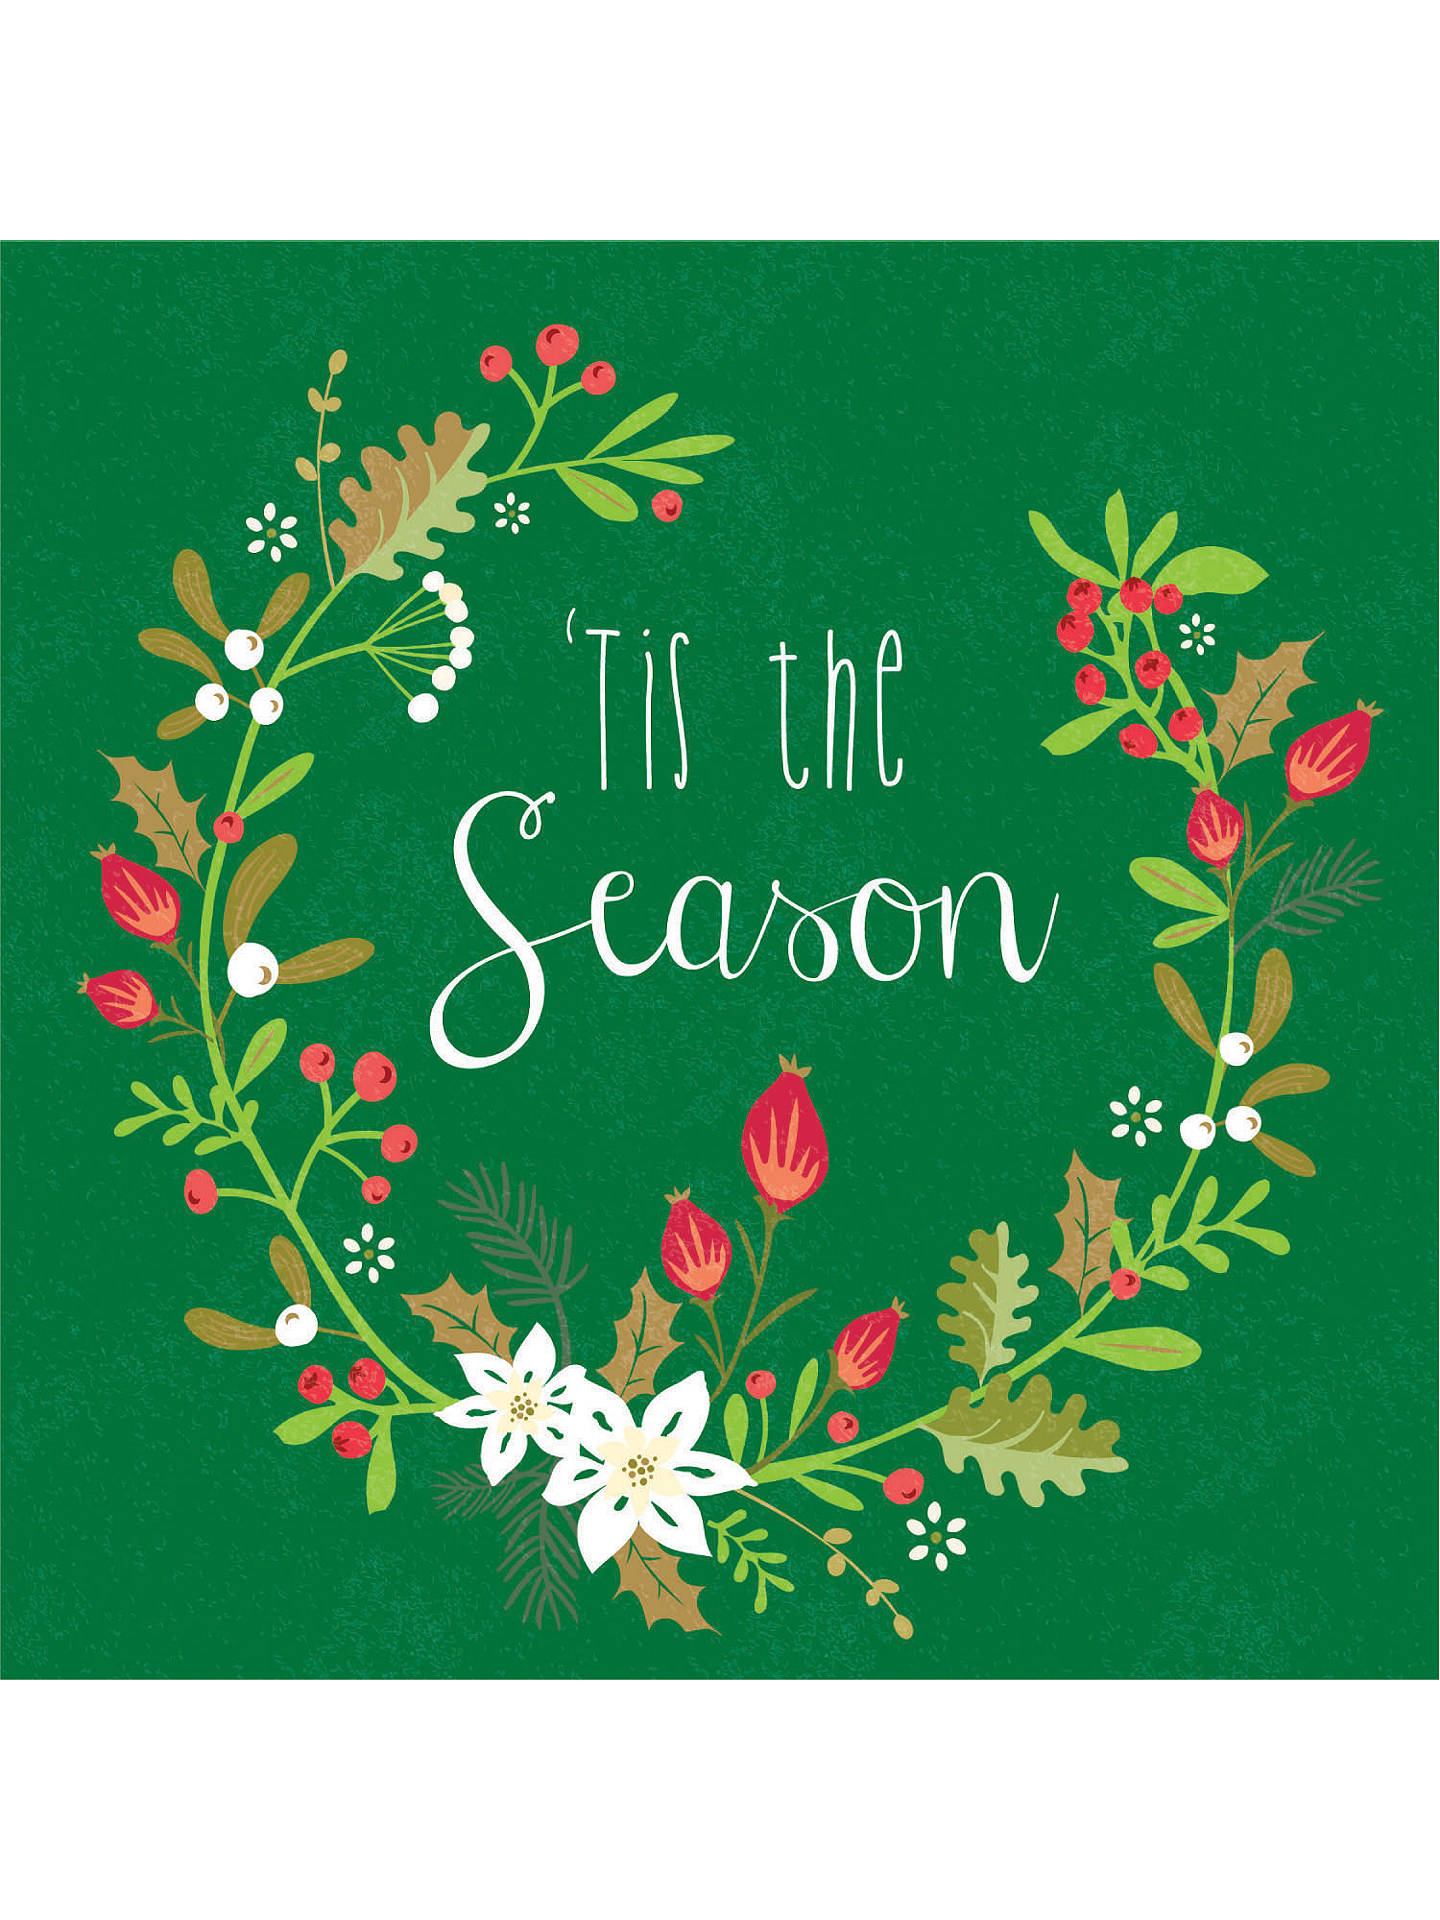 Special Holiday Edition Tis Season For >> Special Editions Tis The Season Wreath Cards Pack Of 10 At John